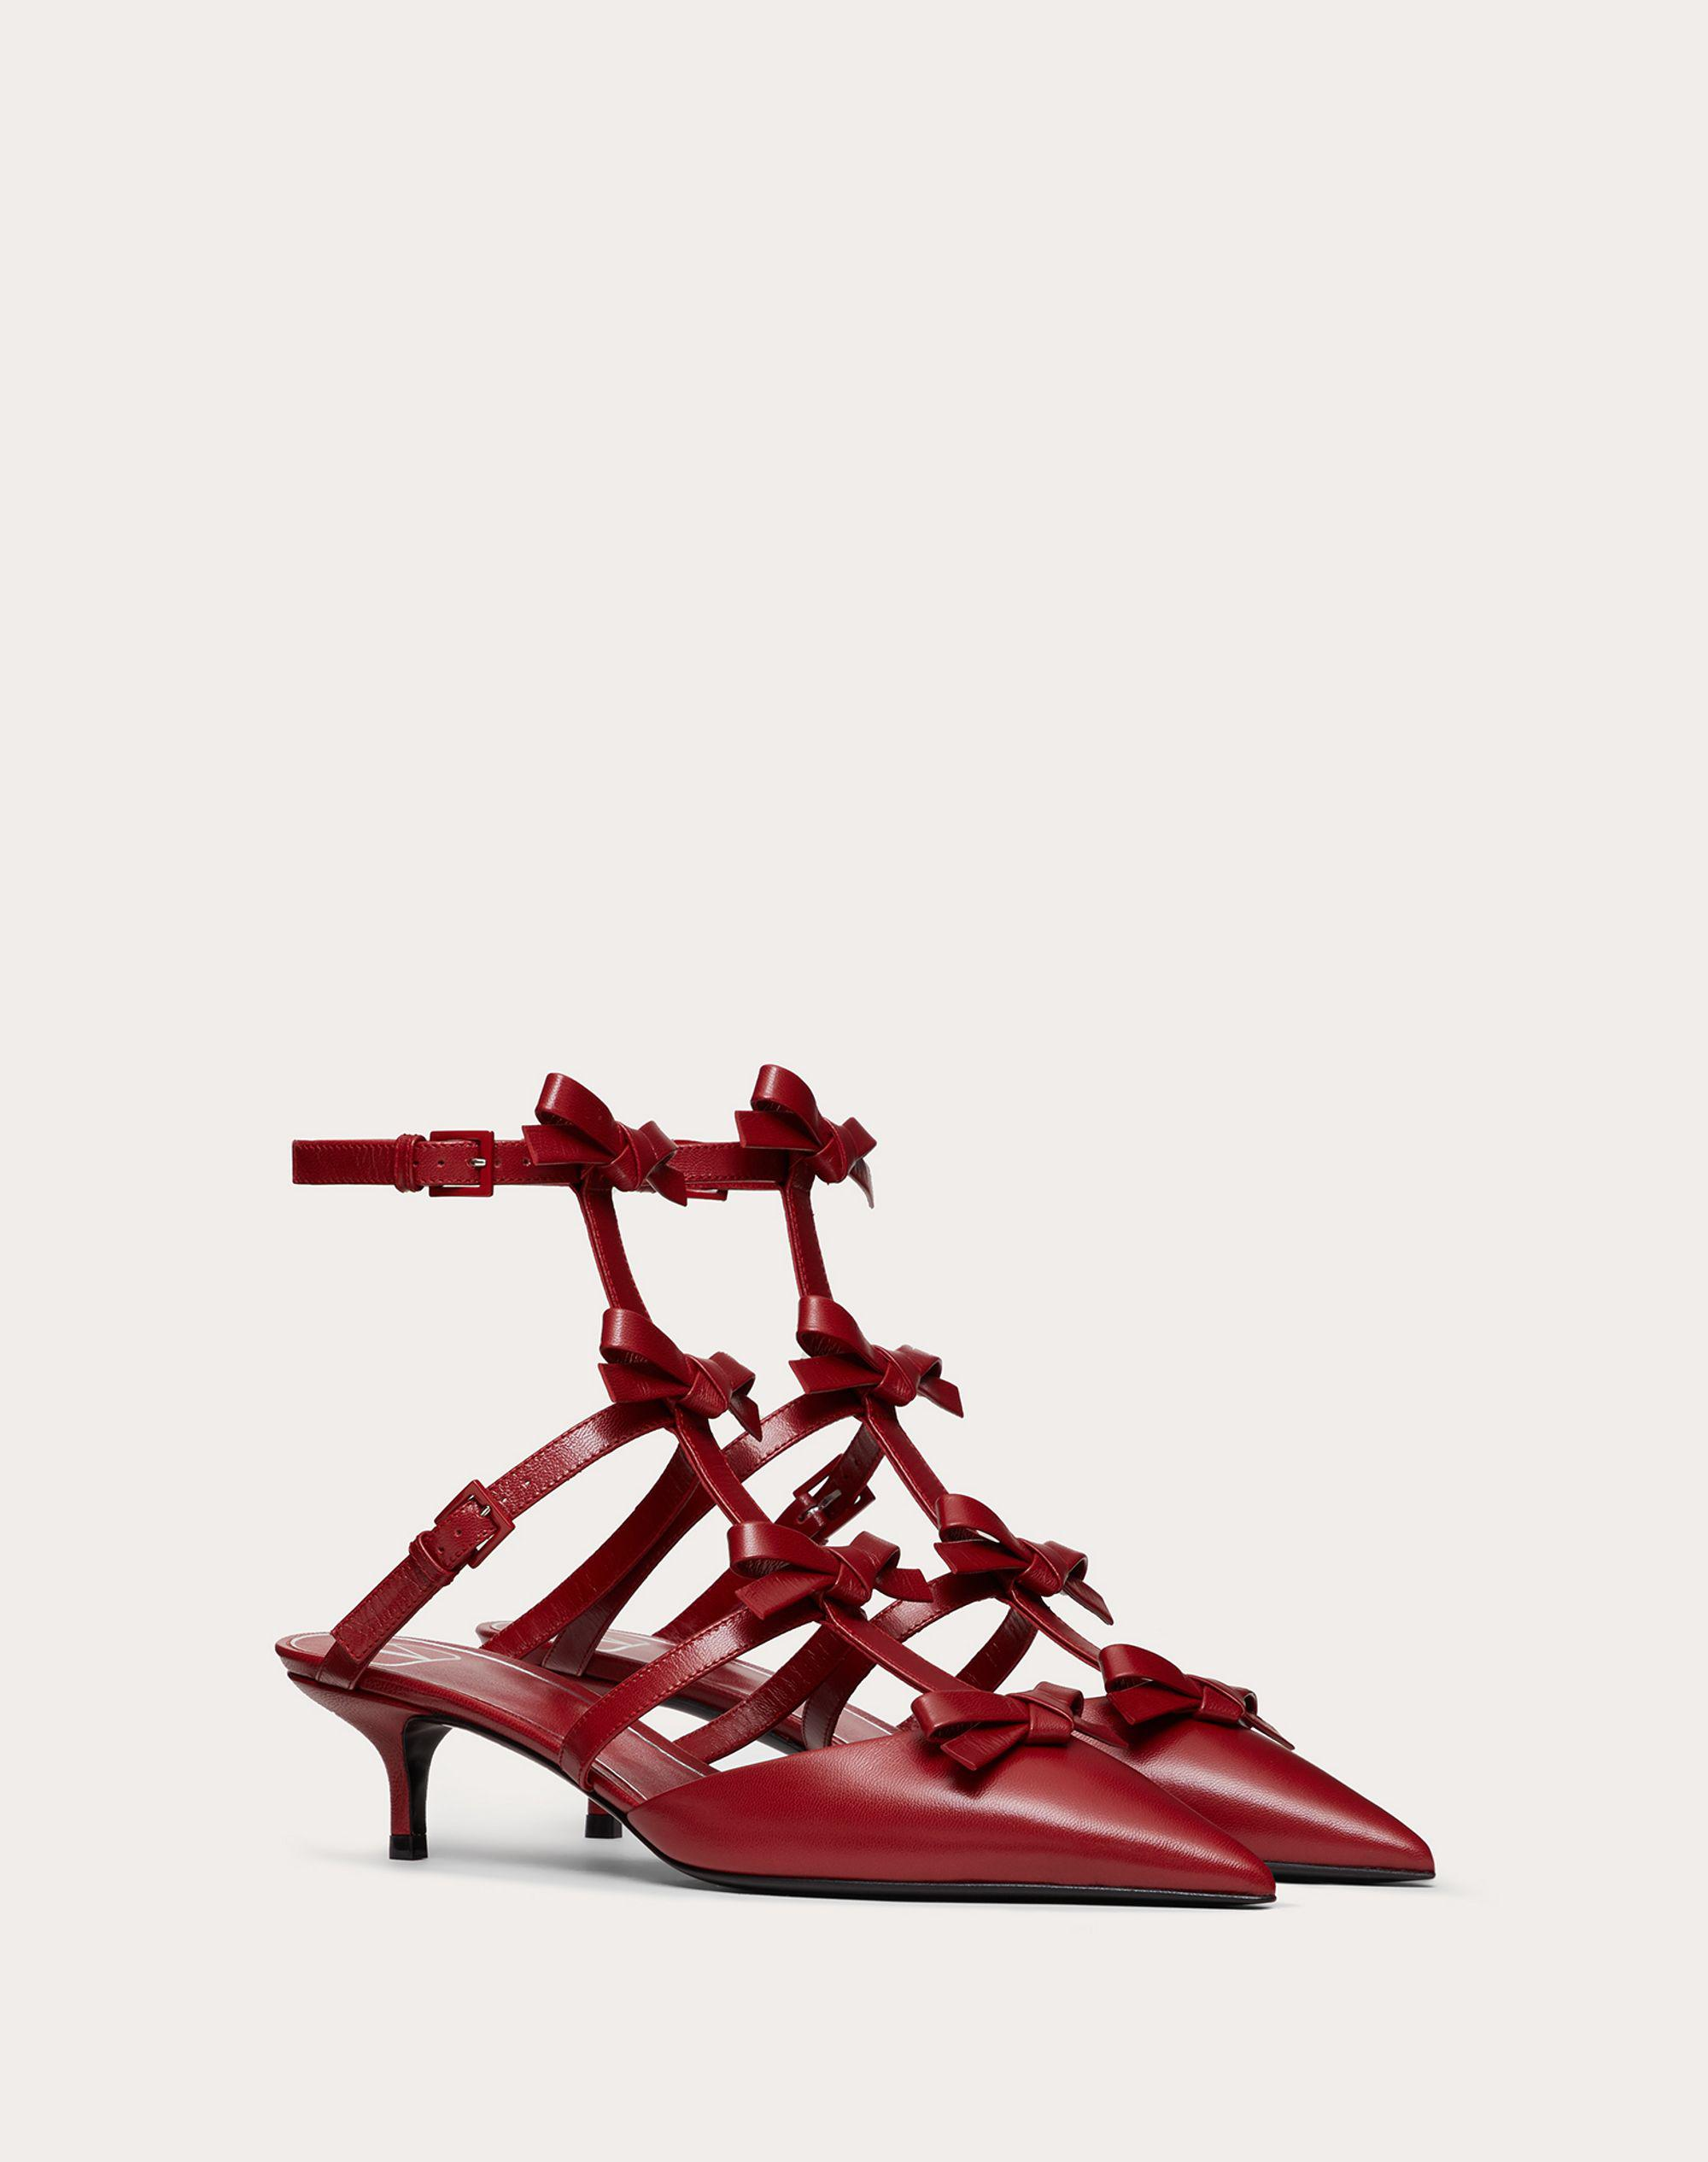 ANKLE STRAP PUMP WITH KIDSKIN FRENCH BOWS  40 MM 1